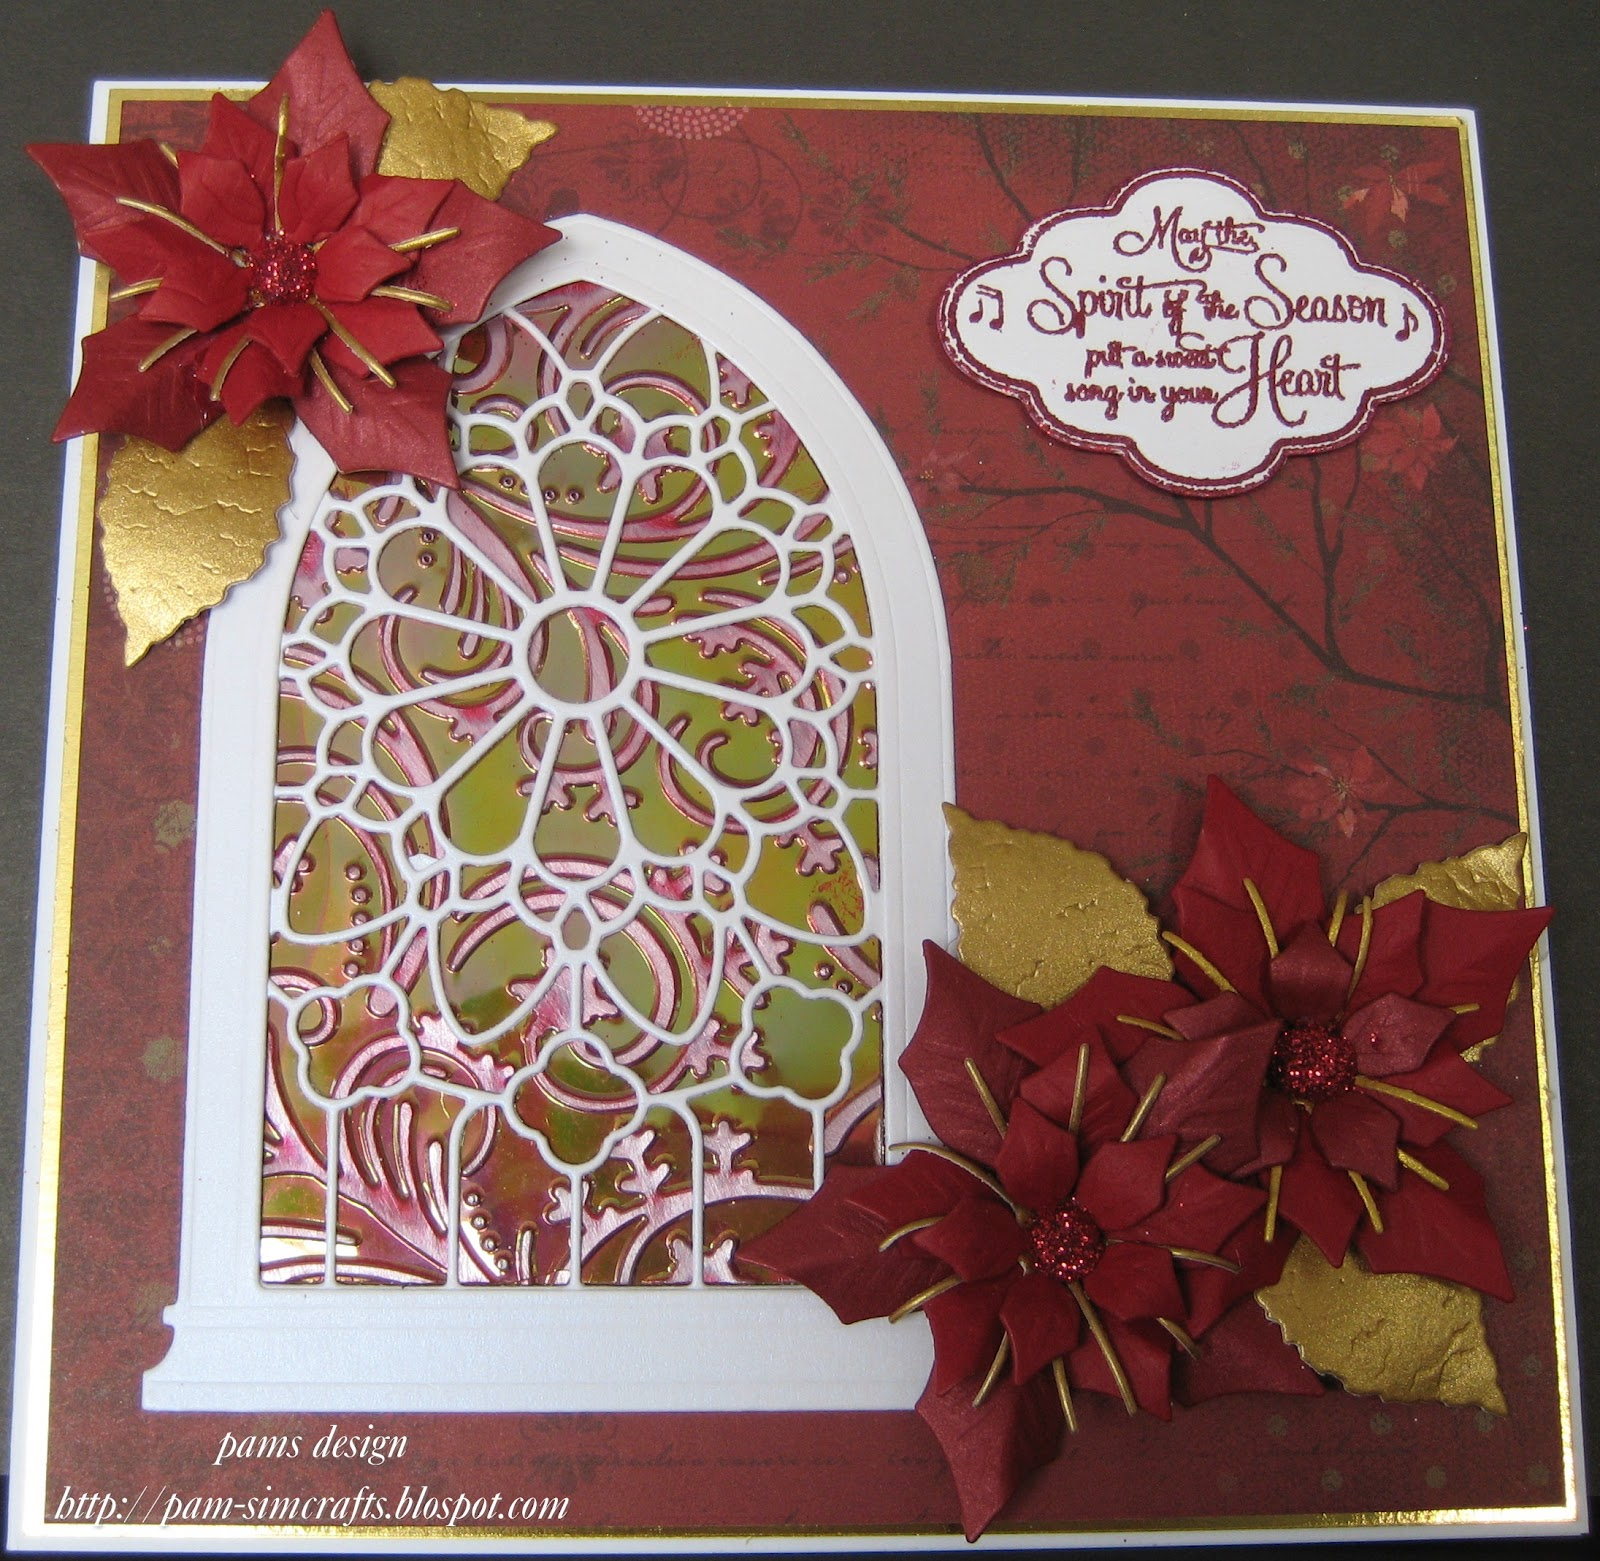 pamscrafts: Gothic Stained Glass Window